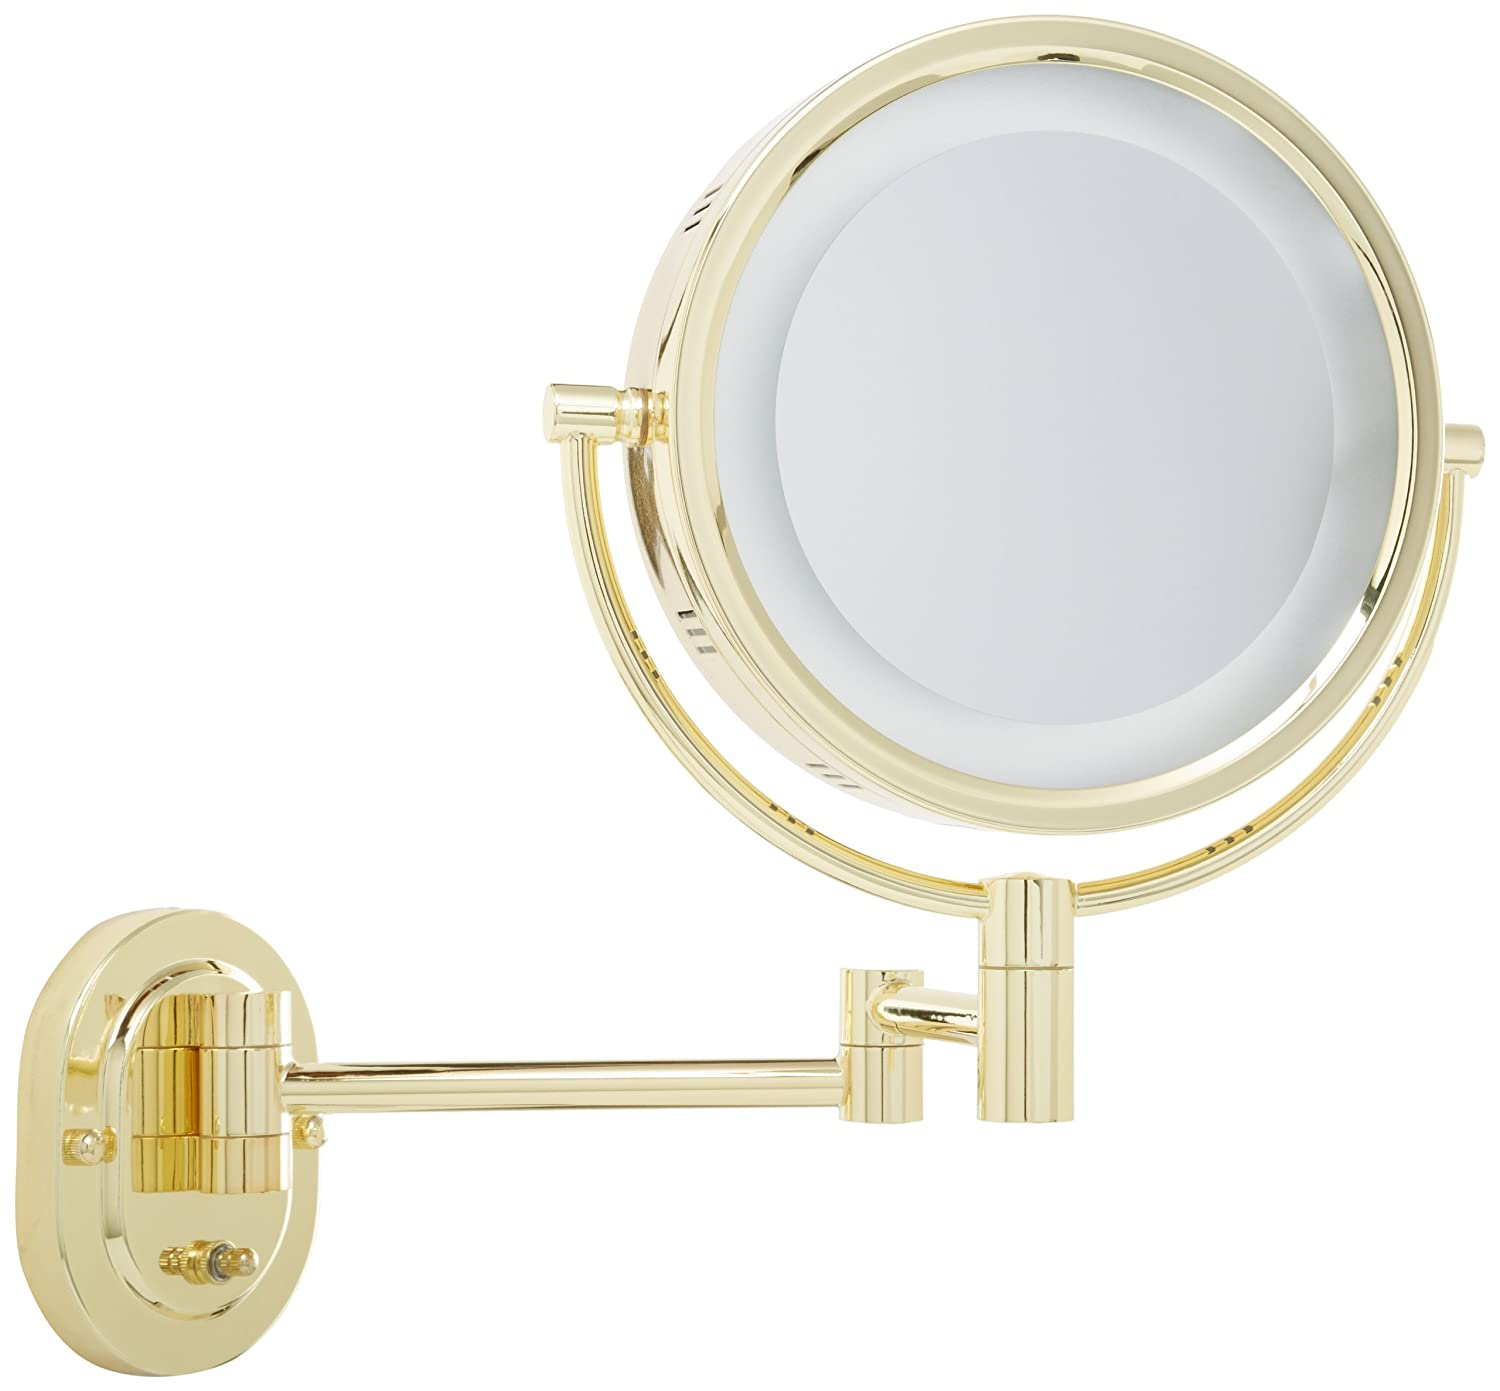 jerdon hl65g 8 inch lighted wall mount makeup mirror with 5x magnification gold ebay. Black Bedroom Furniture Sets. Home Design Ideas